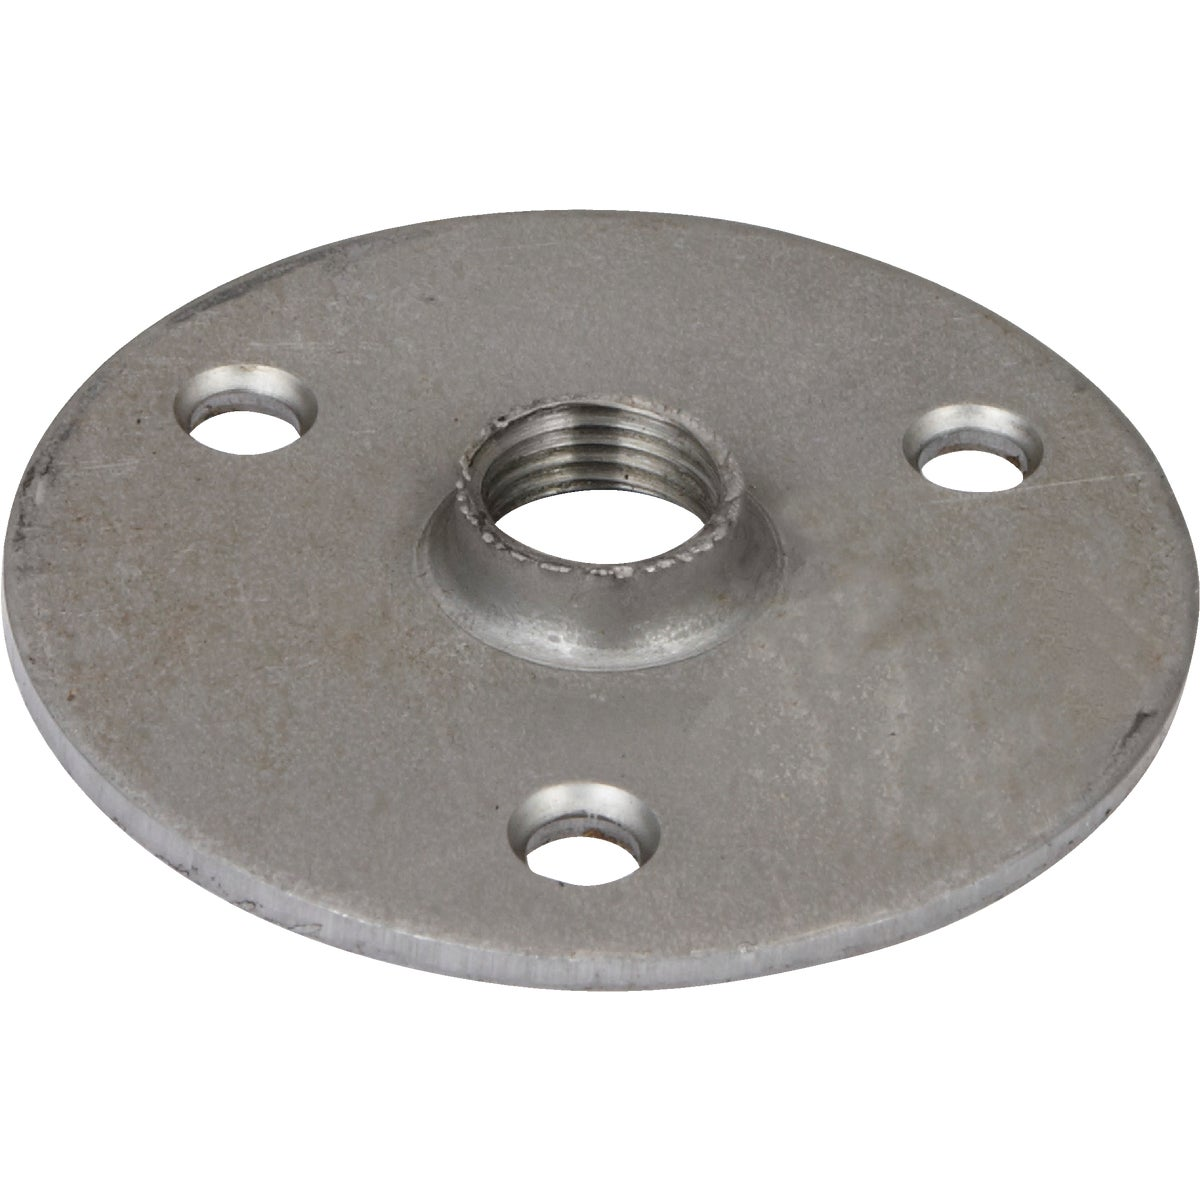 "3/8"" STEEL FLOOR FLANGE"